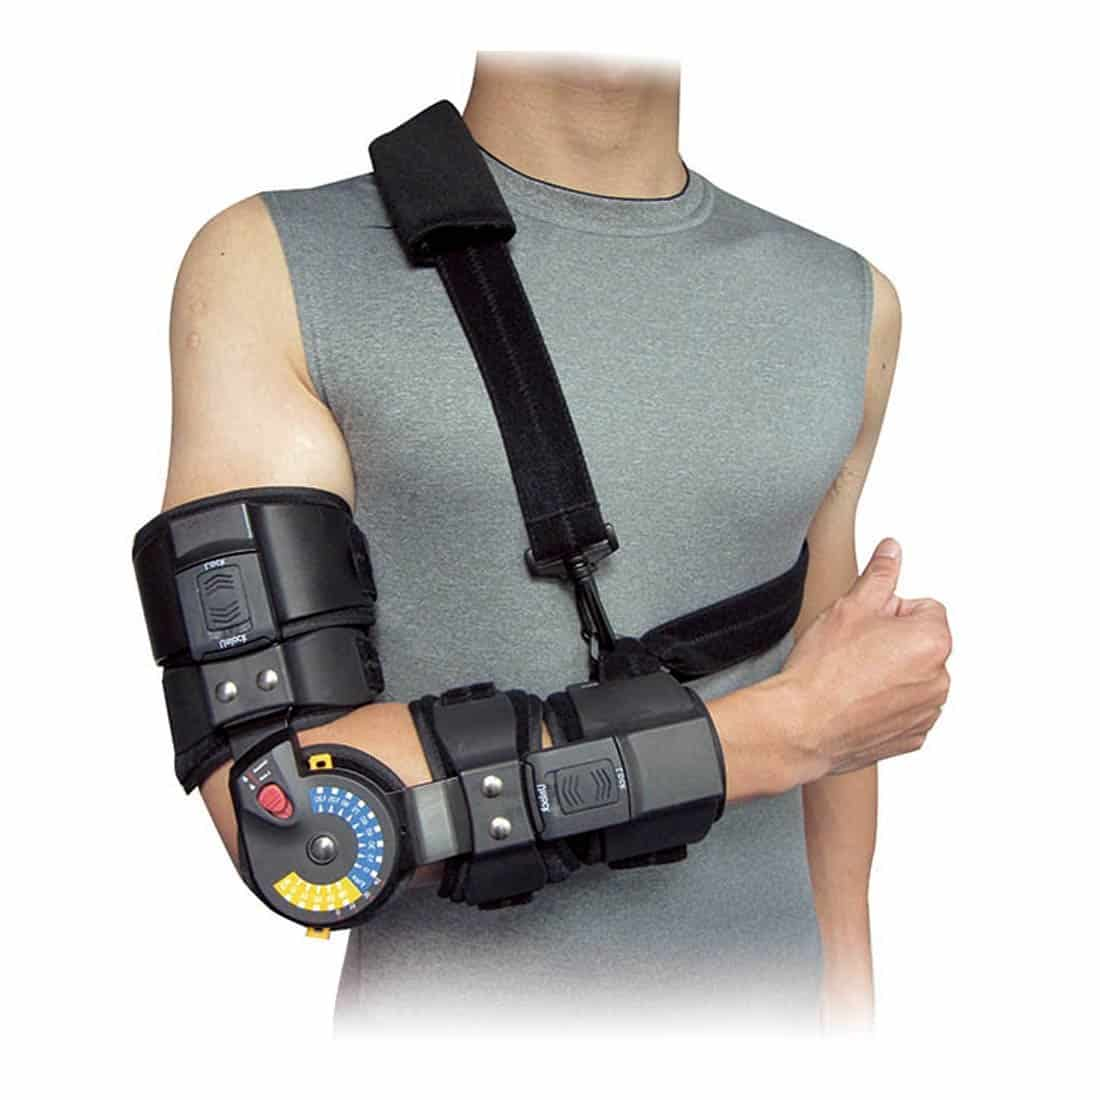 Orthomen ROM Hinged Elbow Brace